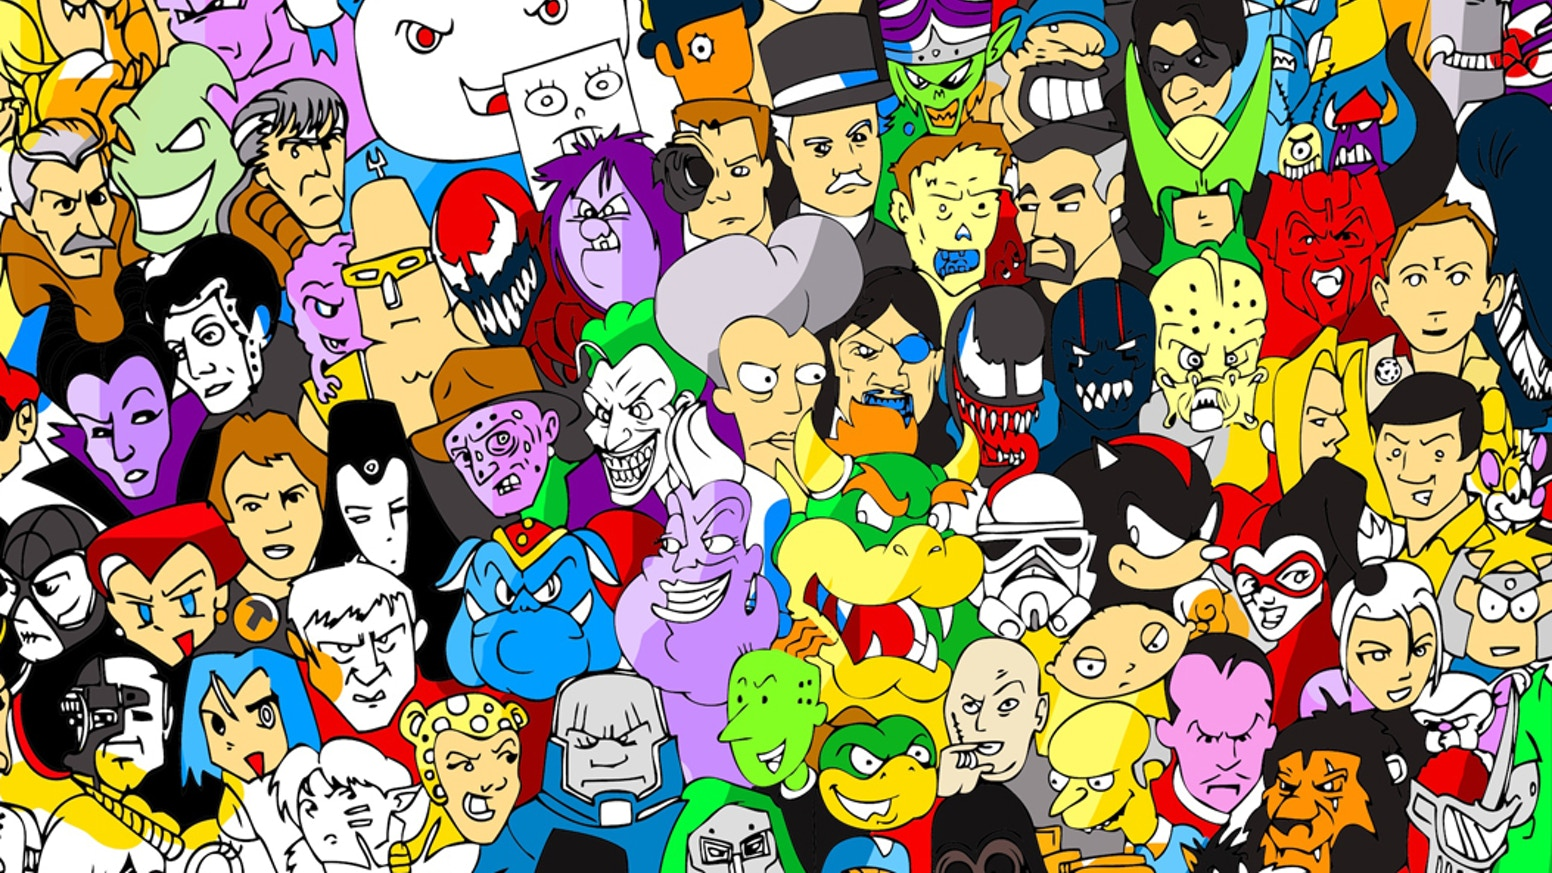 A drawing of the world's greatest villains, selected by you. A drawing that grows as backers share their beloved baddies.